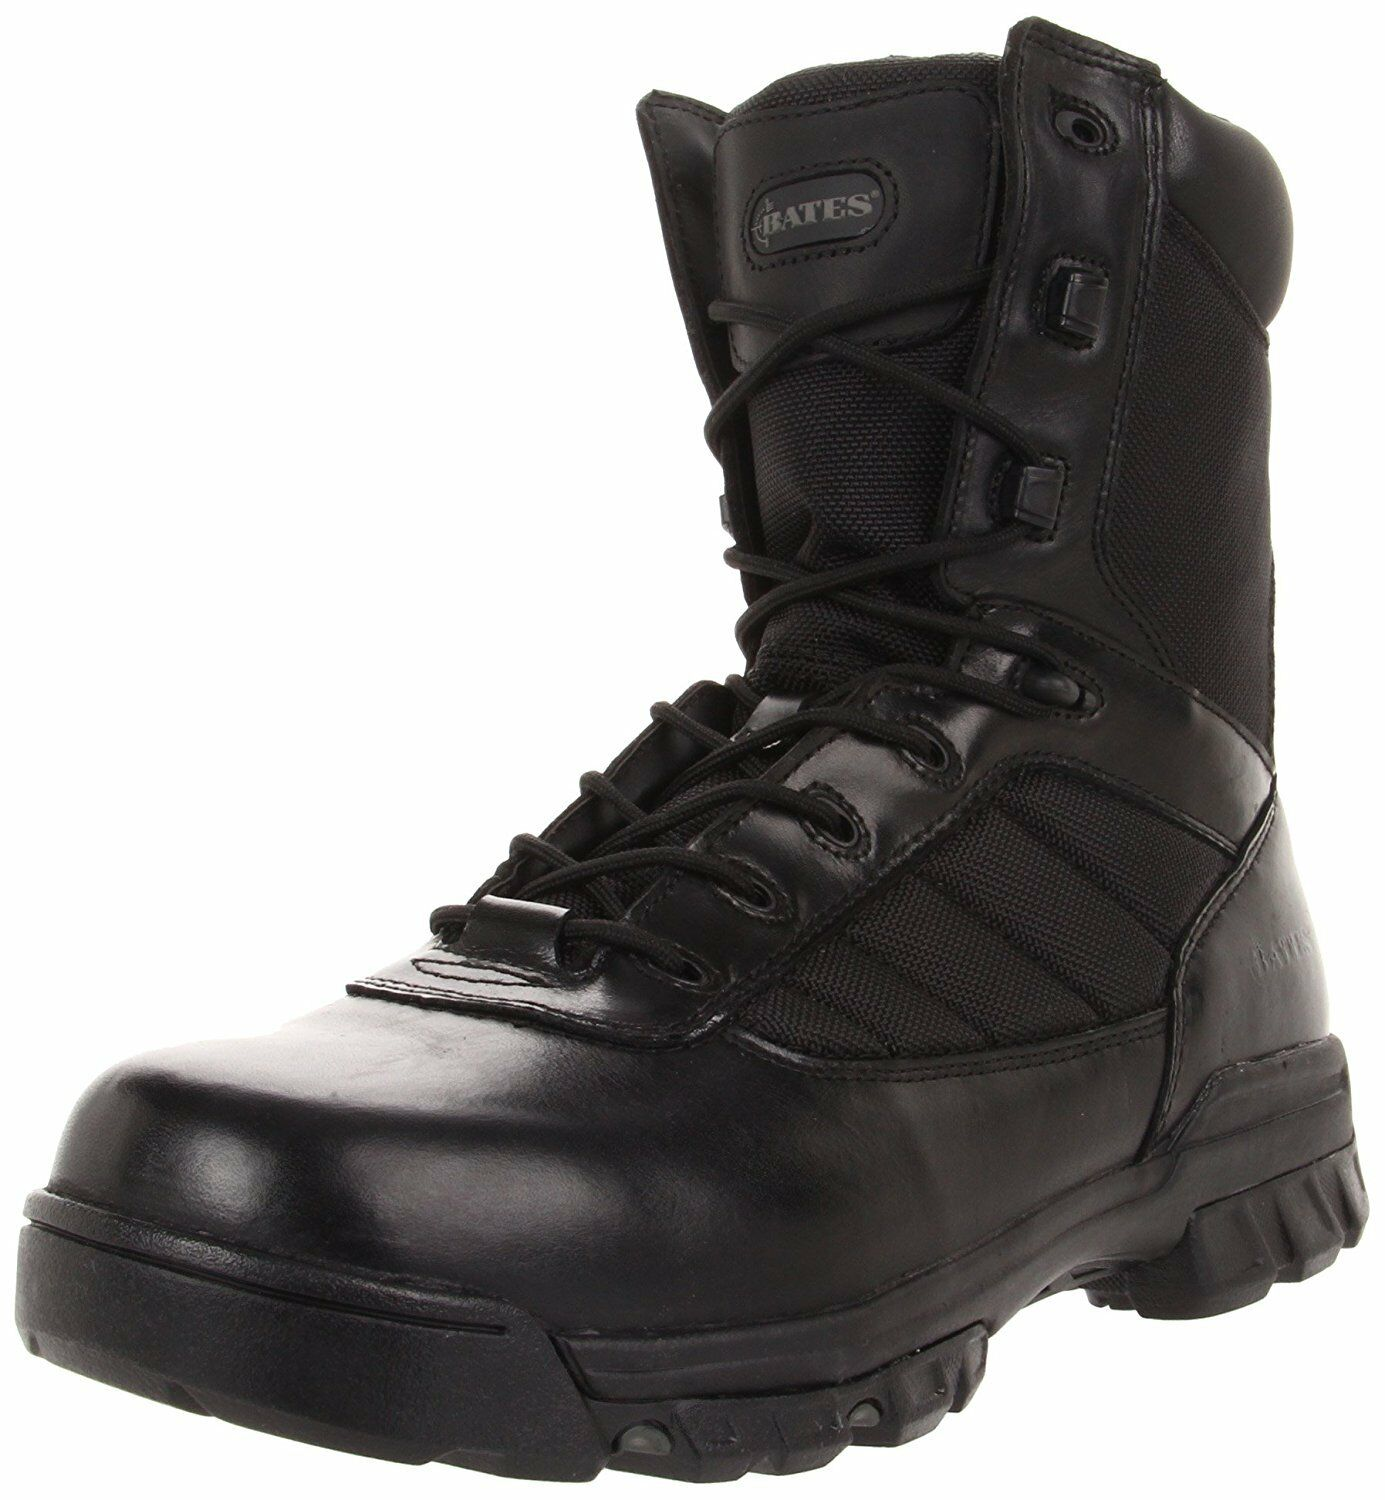 Bates Uomo Ultra-Lites 8 Inches Inches Inches Tactical Sport Side Zip Work avvio,nero,11 M US 2af53b